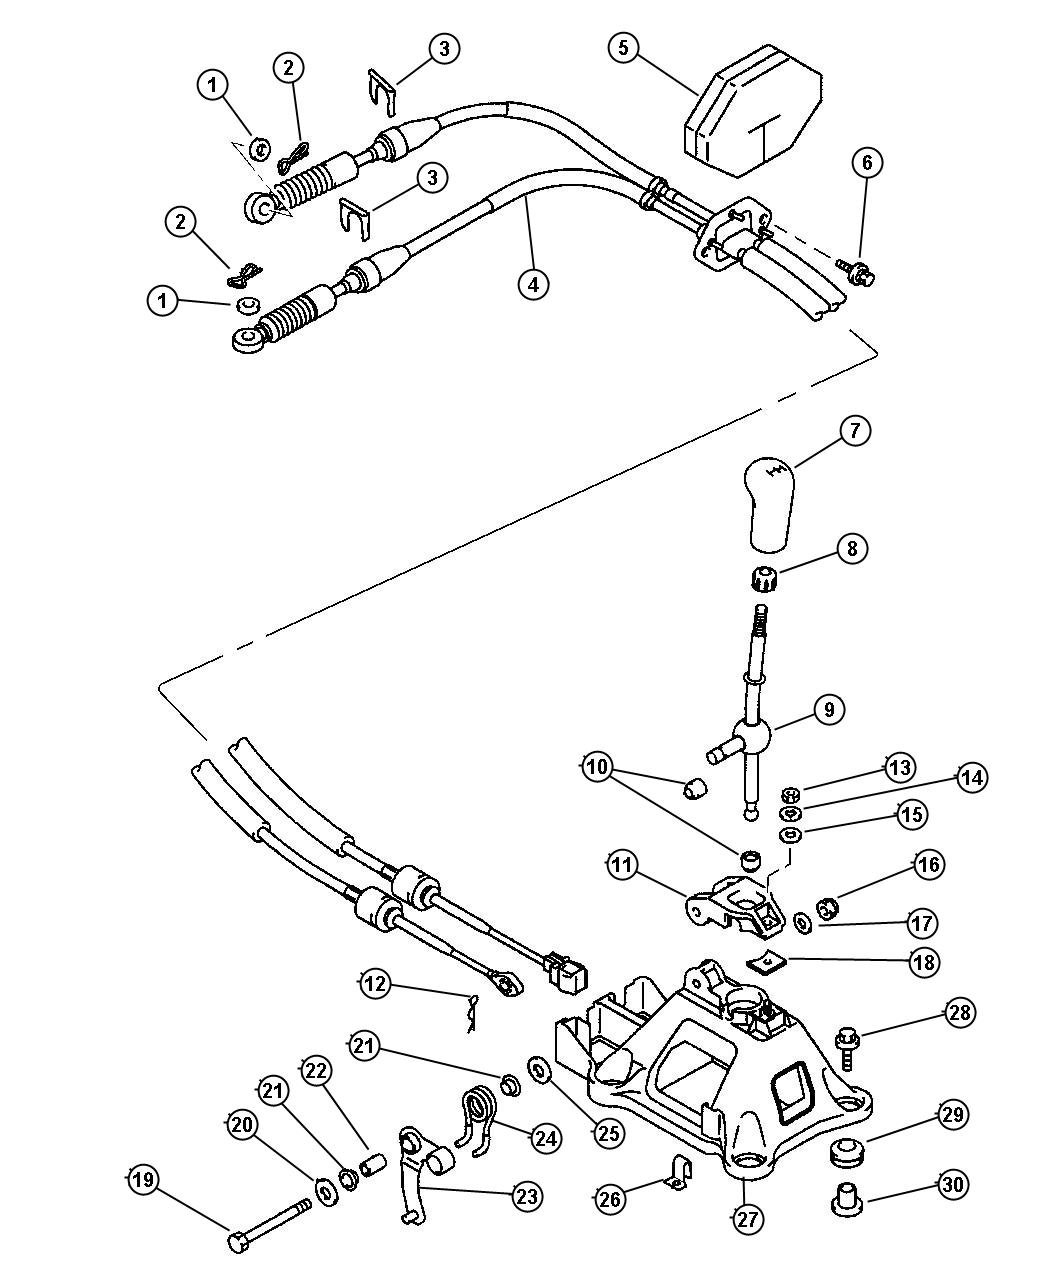 Dodge Viper Spacer Gearshift Control Engine Service